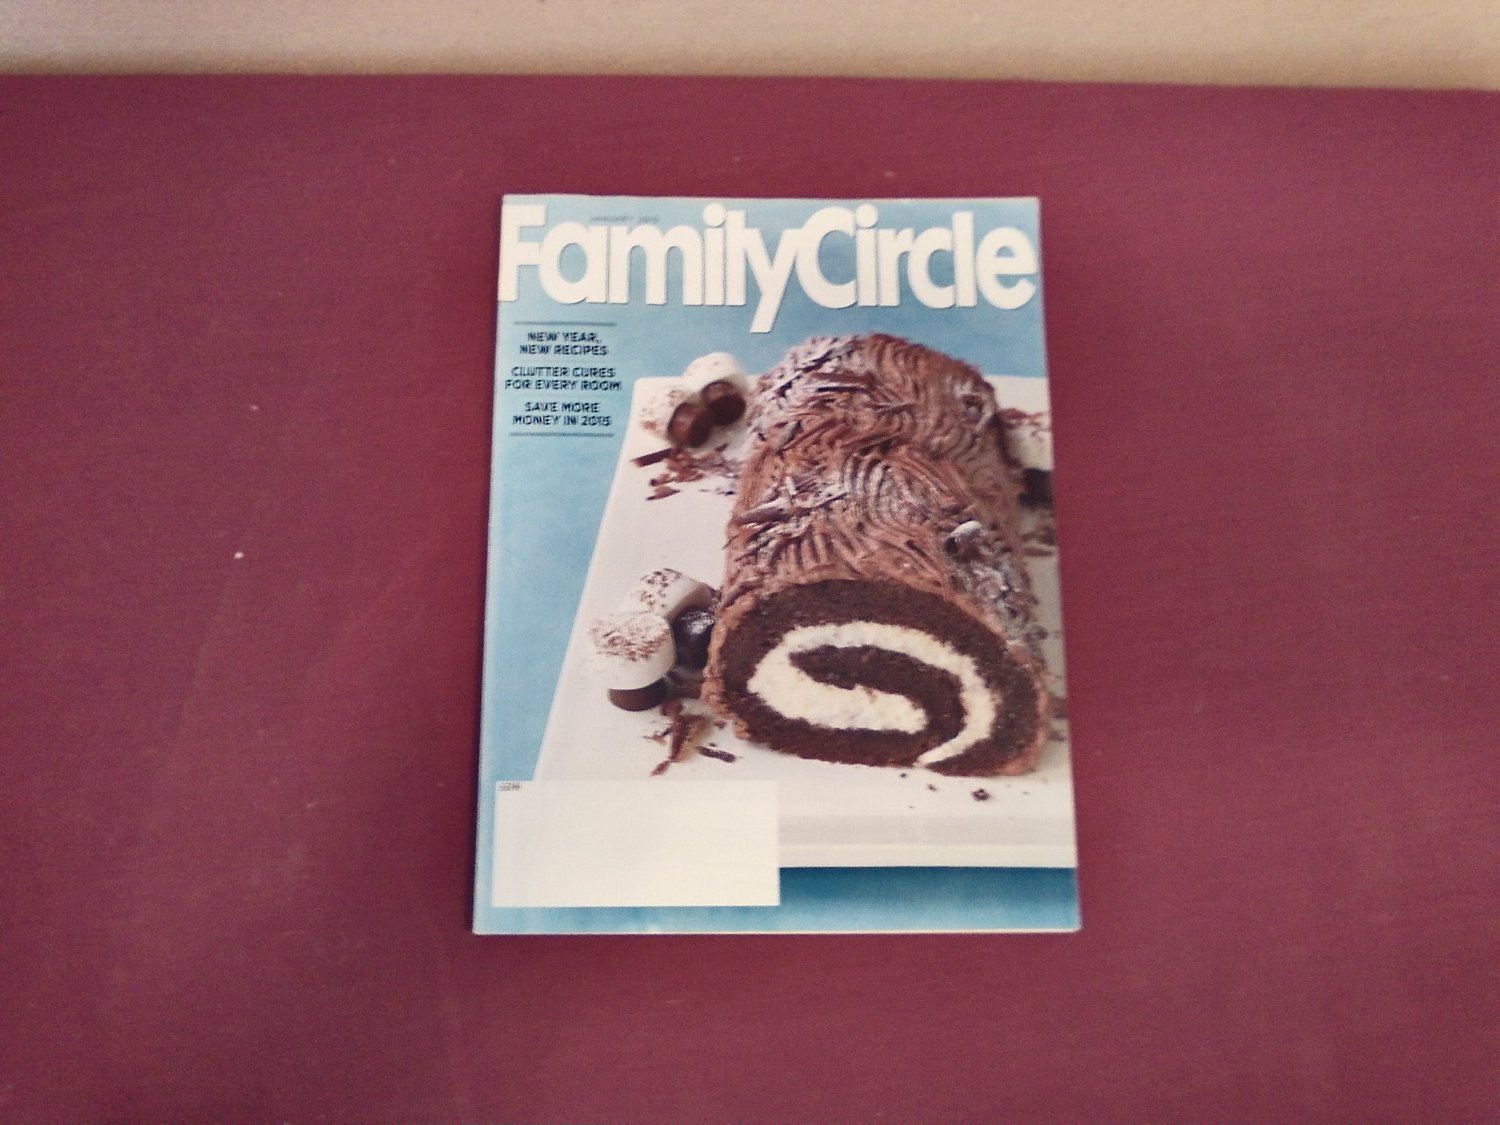 Family Circle Magazine January 2015 Volume 128 Number 1 - New Year New Recipes